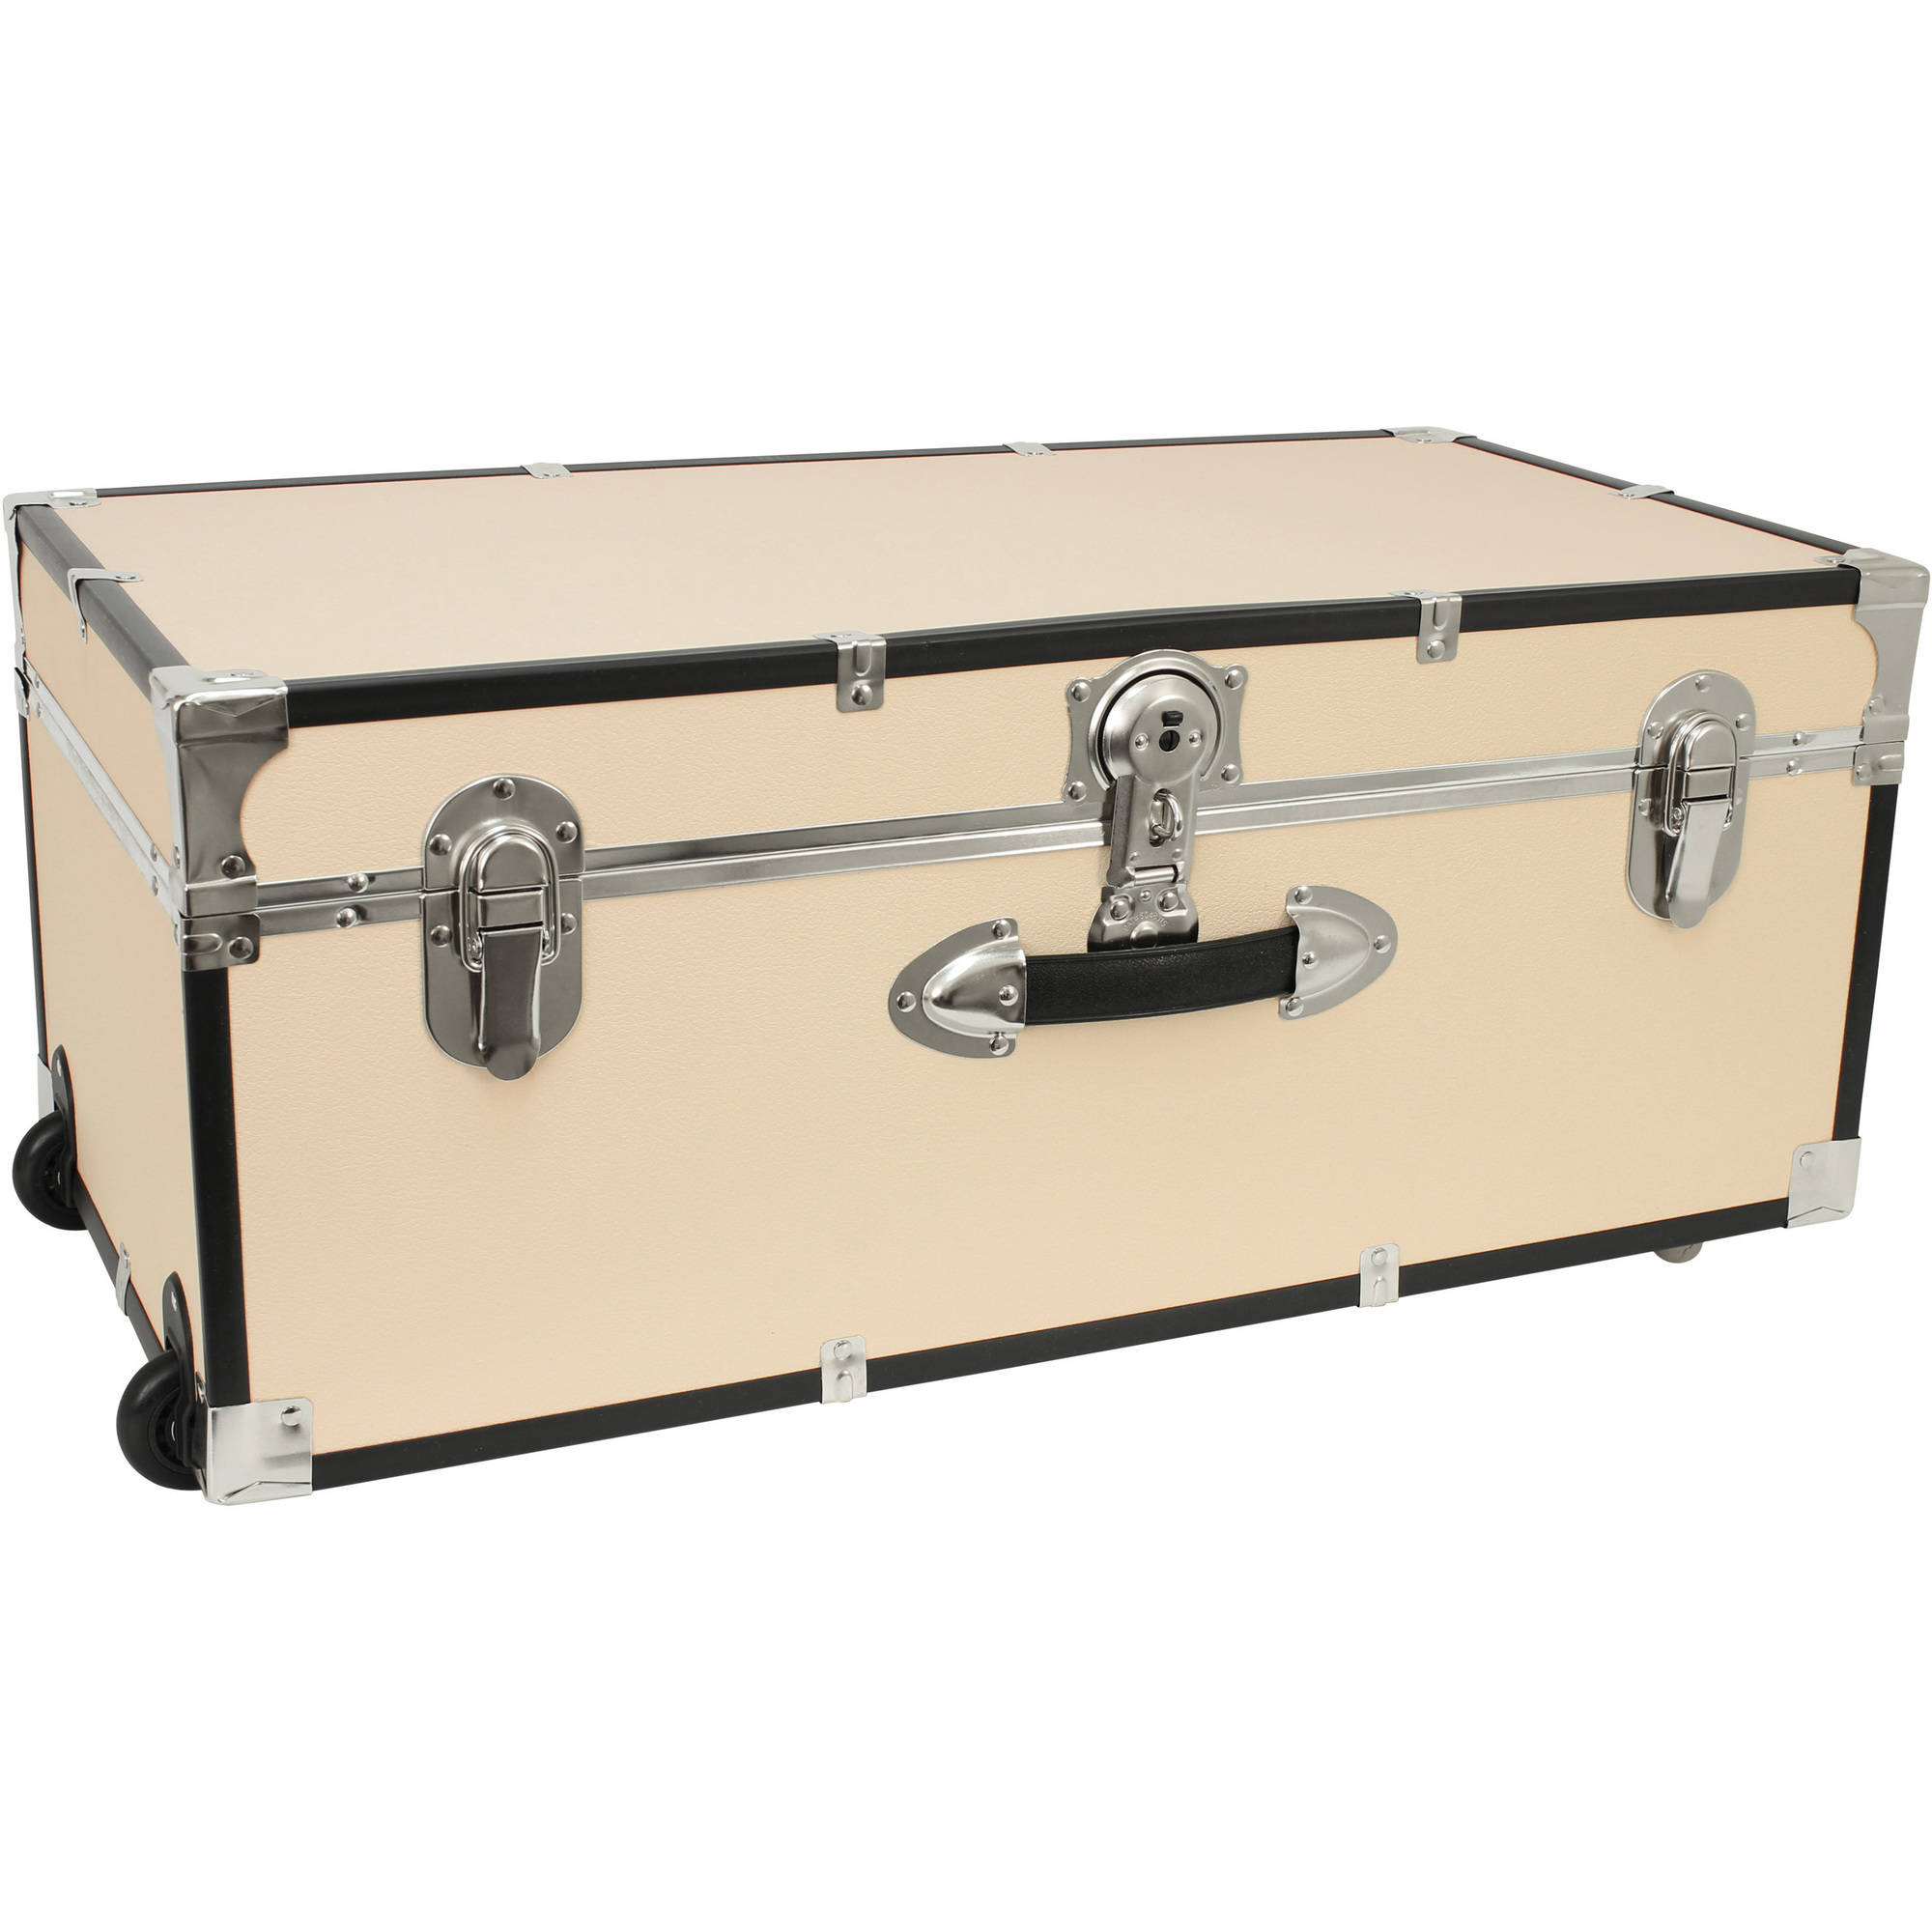 Seward Trunk Collegiate Collection Footlocker Trunk 25 Gal. Wood Storage Box with Handles, Beige